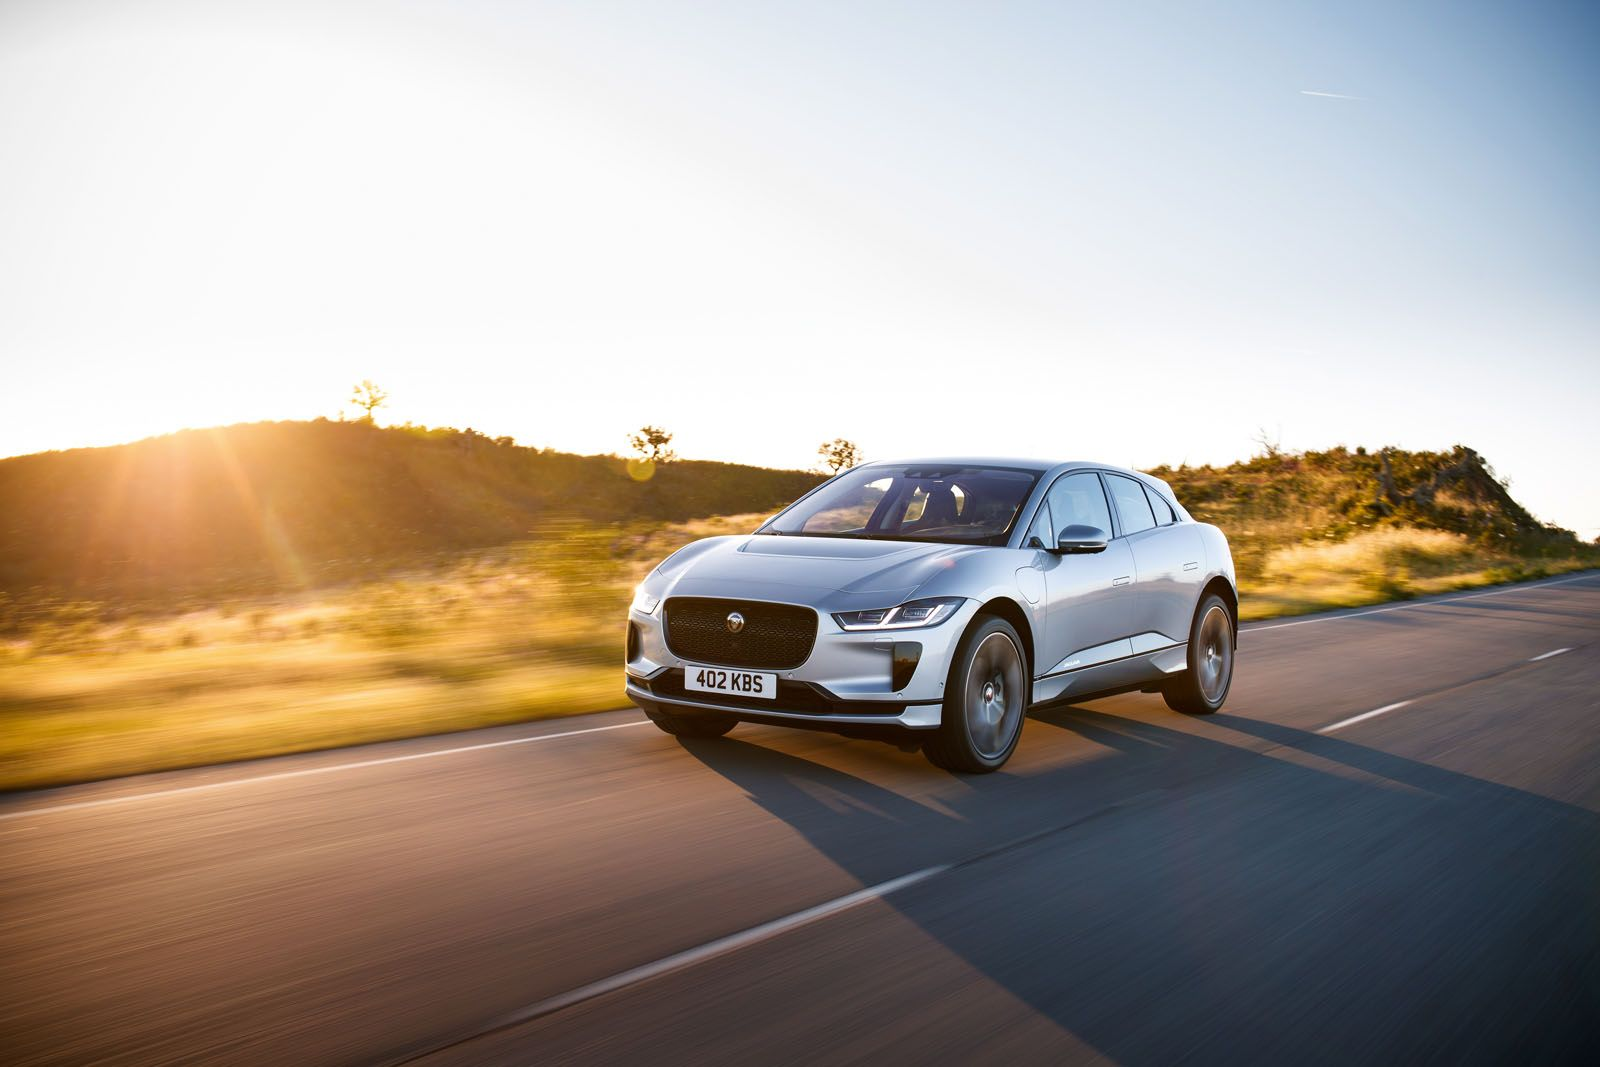 The I-Pace reveals Jaguar's elegant new design language